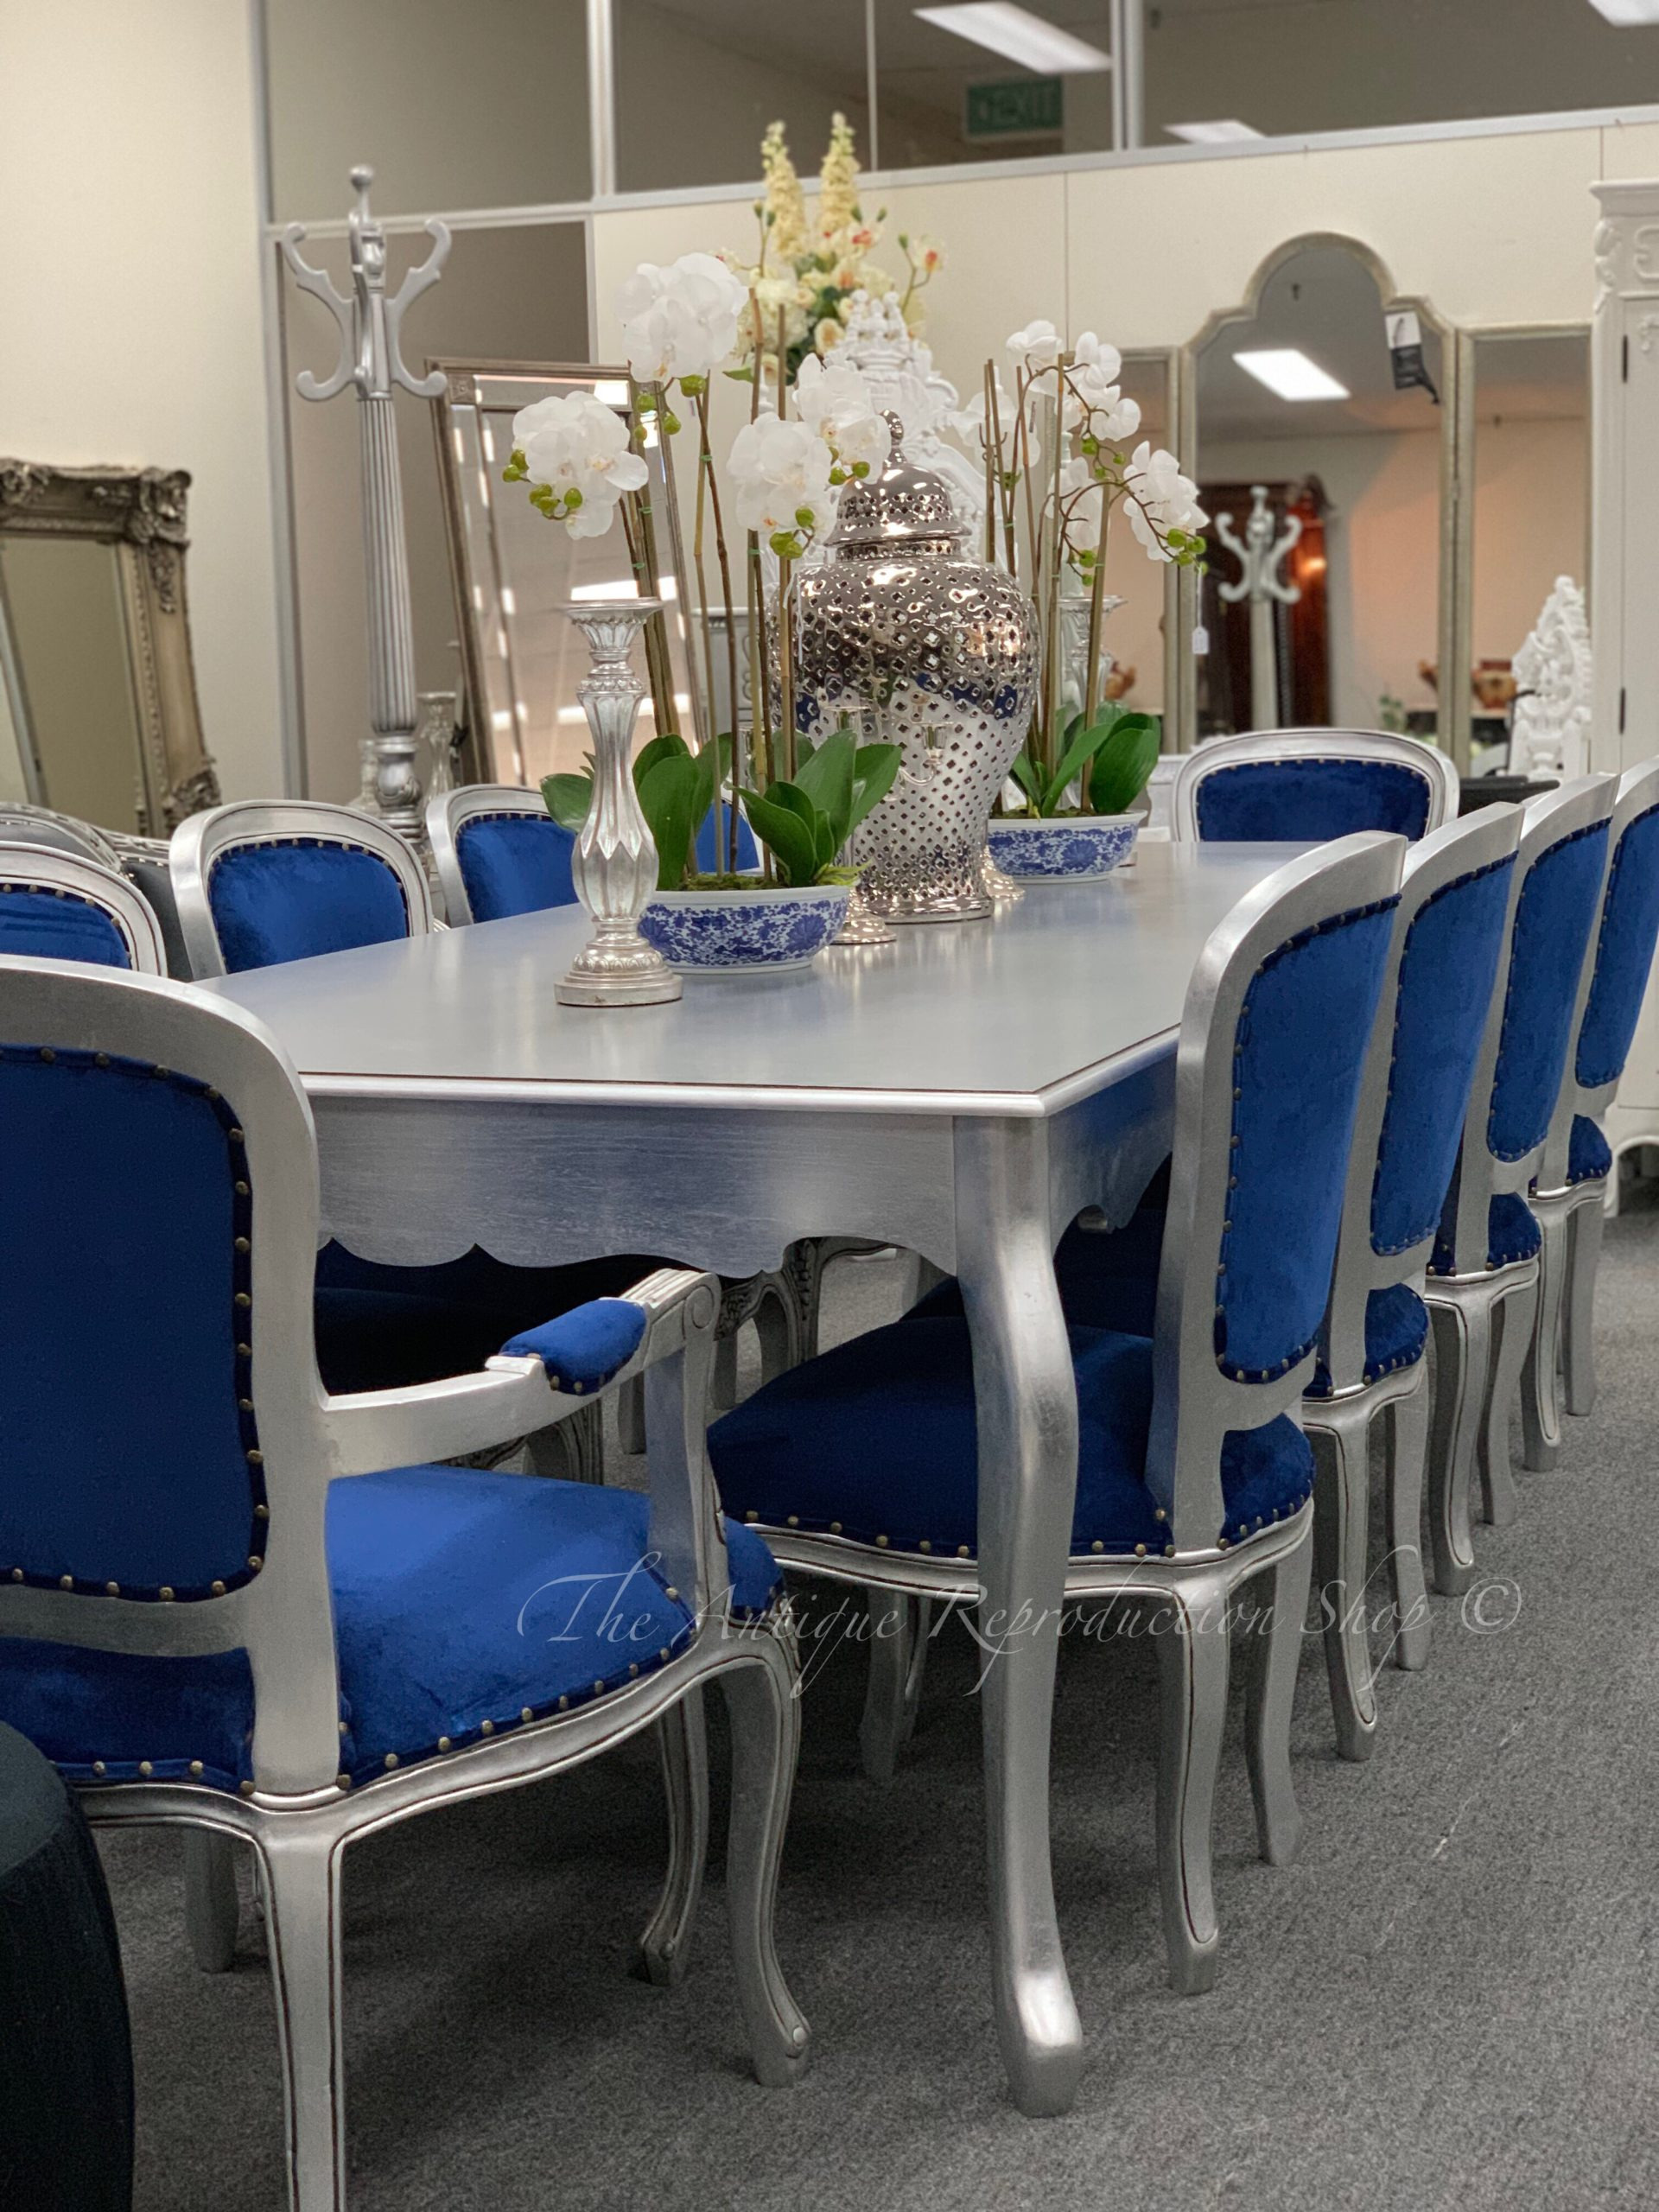 Antique French Provincial Dining Room Furniture Luxury French Provincial Plain Style Dining Table and Chairs Set